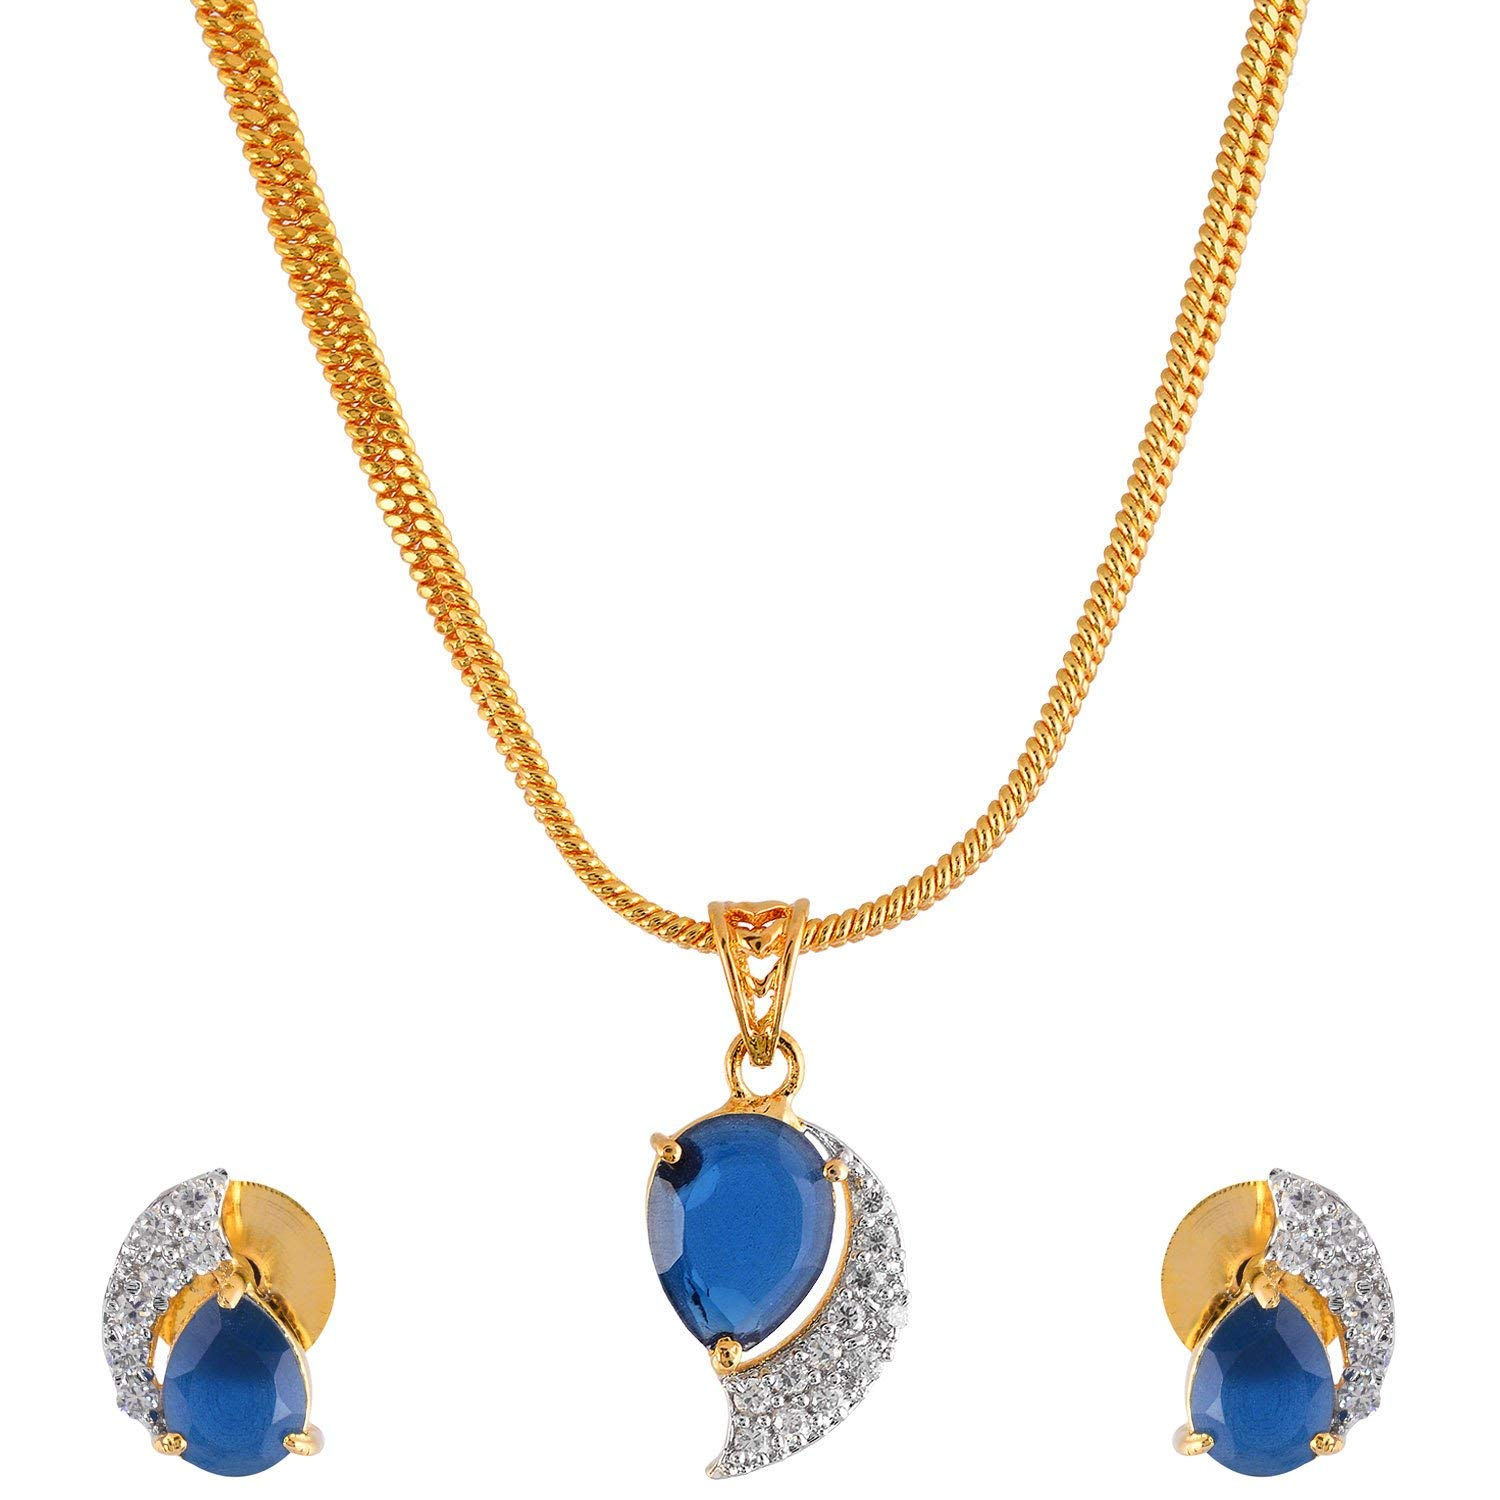 Handicraft Kottage Women's American Diamond Gold Plated Pendant Set with Chain